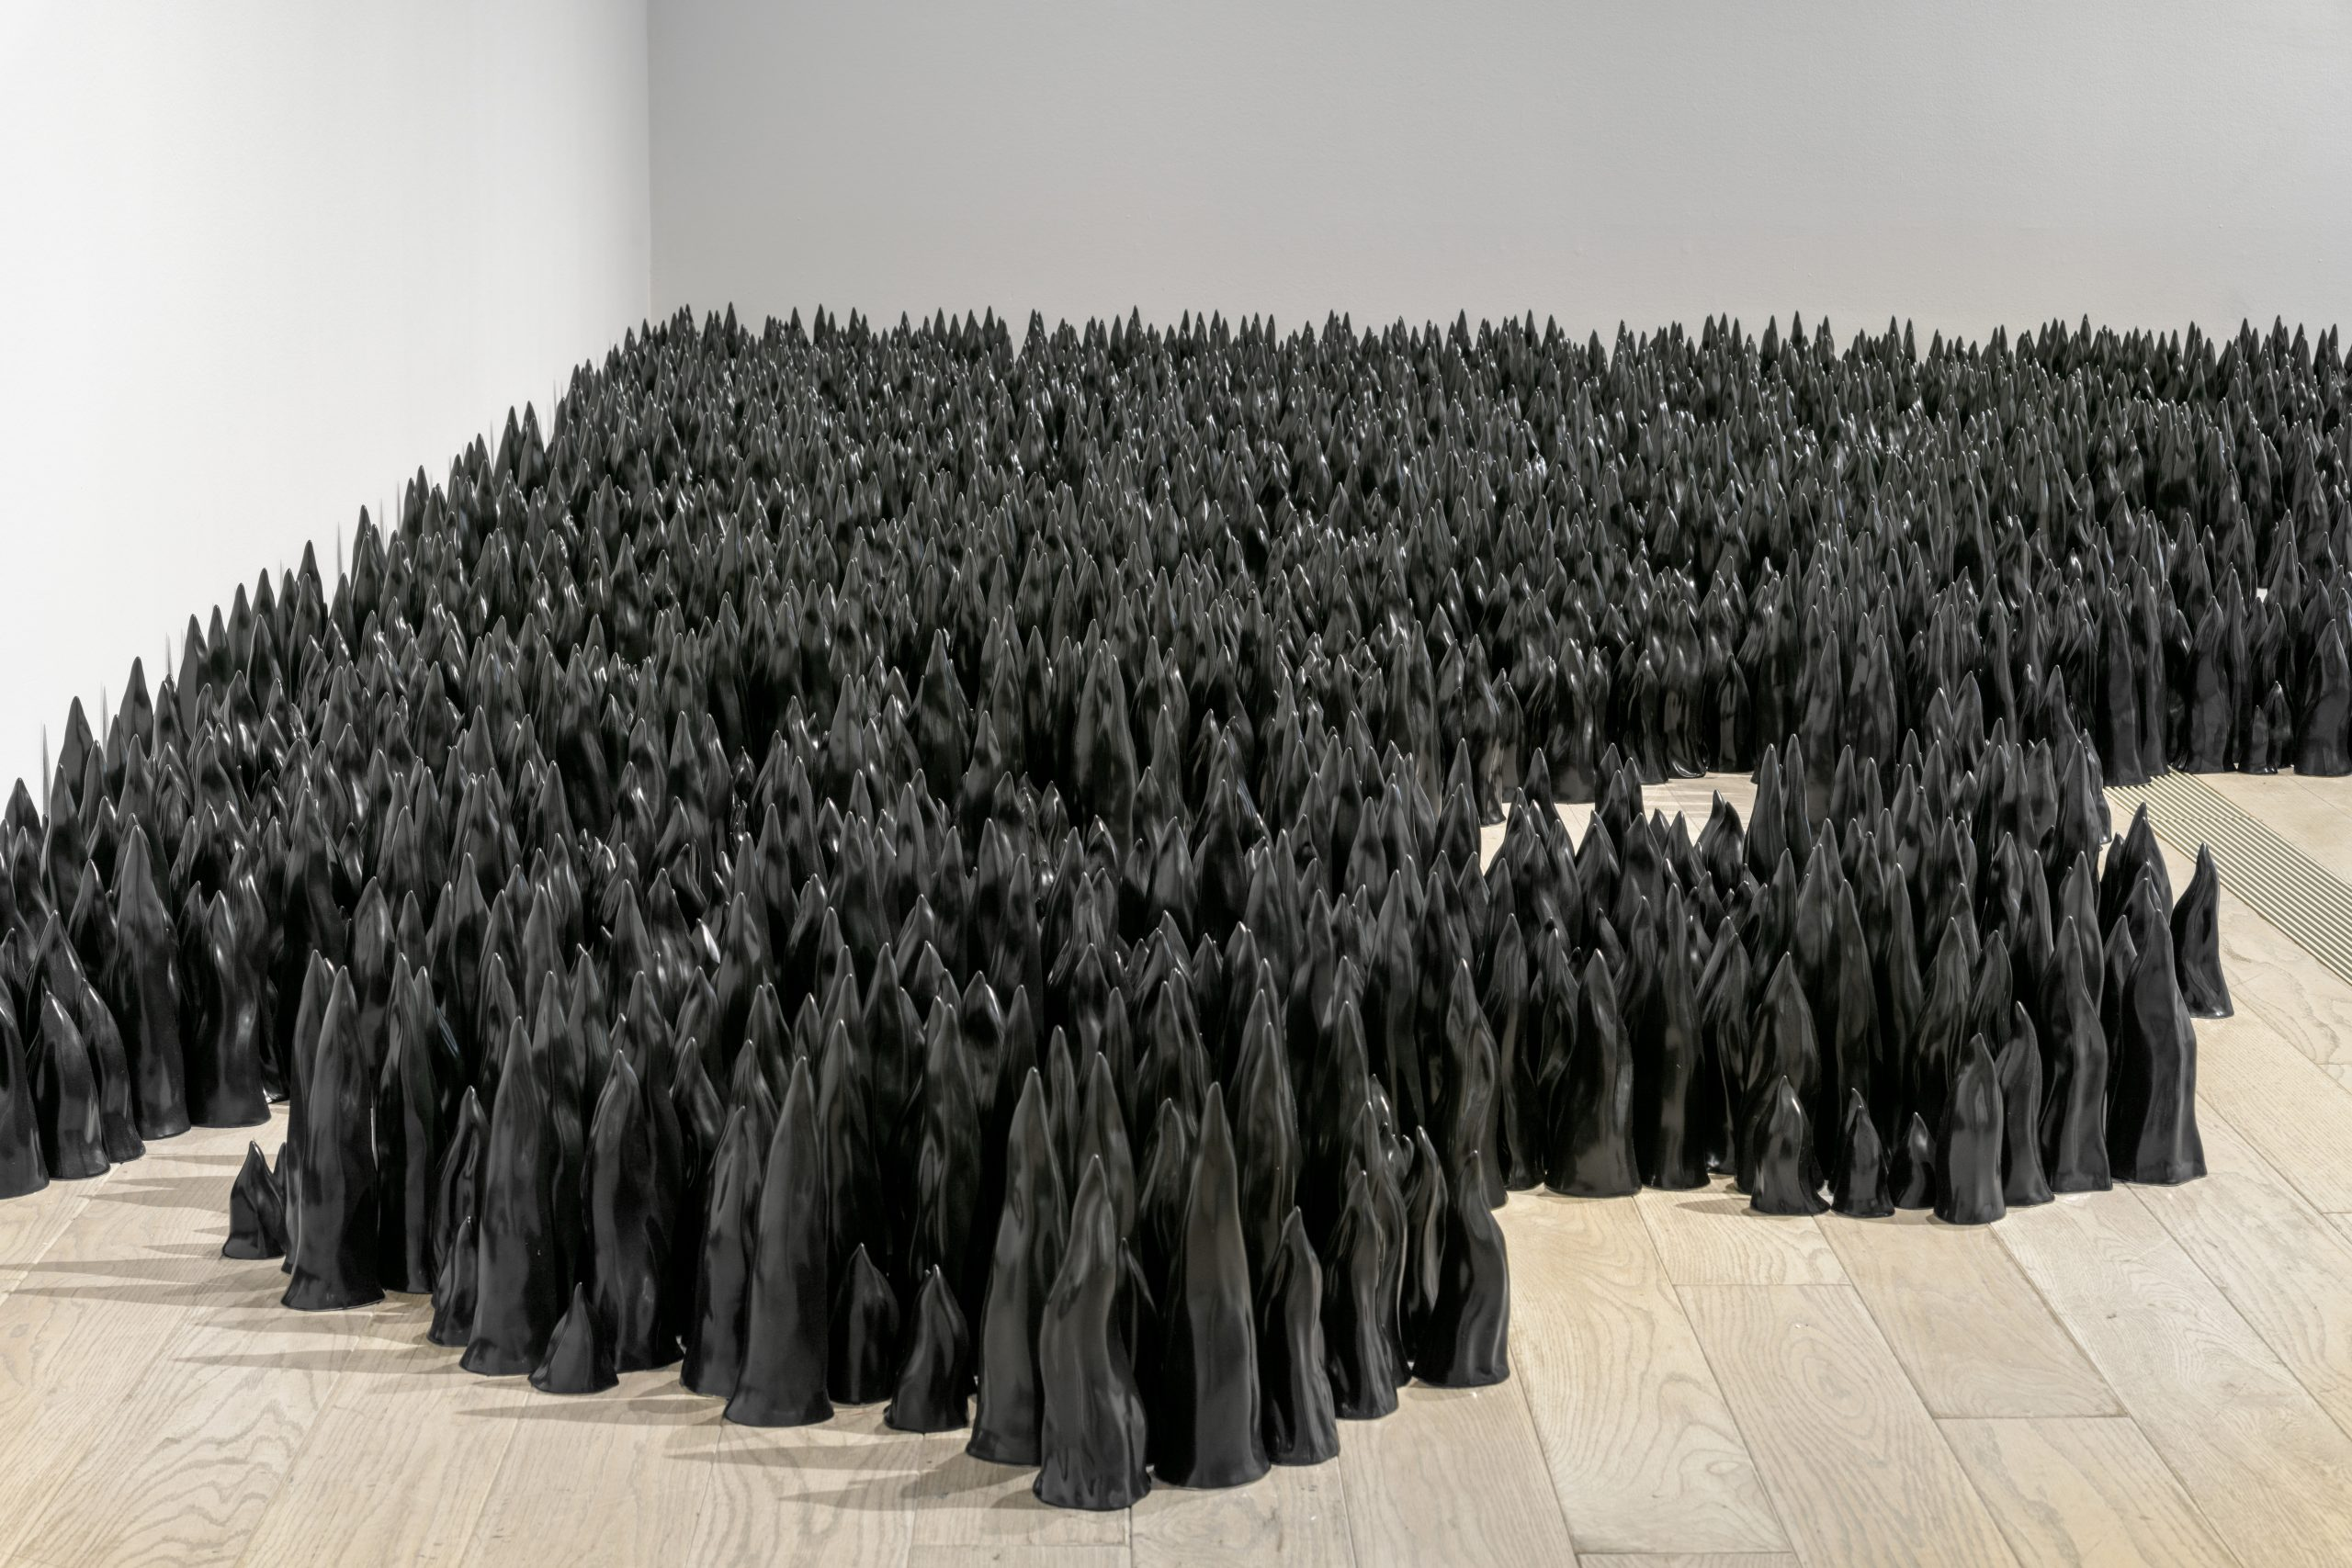 Liu Jianhua, Black Flame, 2017. Installation view, The Allure of Matter: Material Art from China, Los Angeles County Museum of Art, 2019–2020. Photo courtesy of © Museum Associates/LACMA.